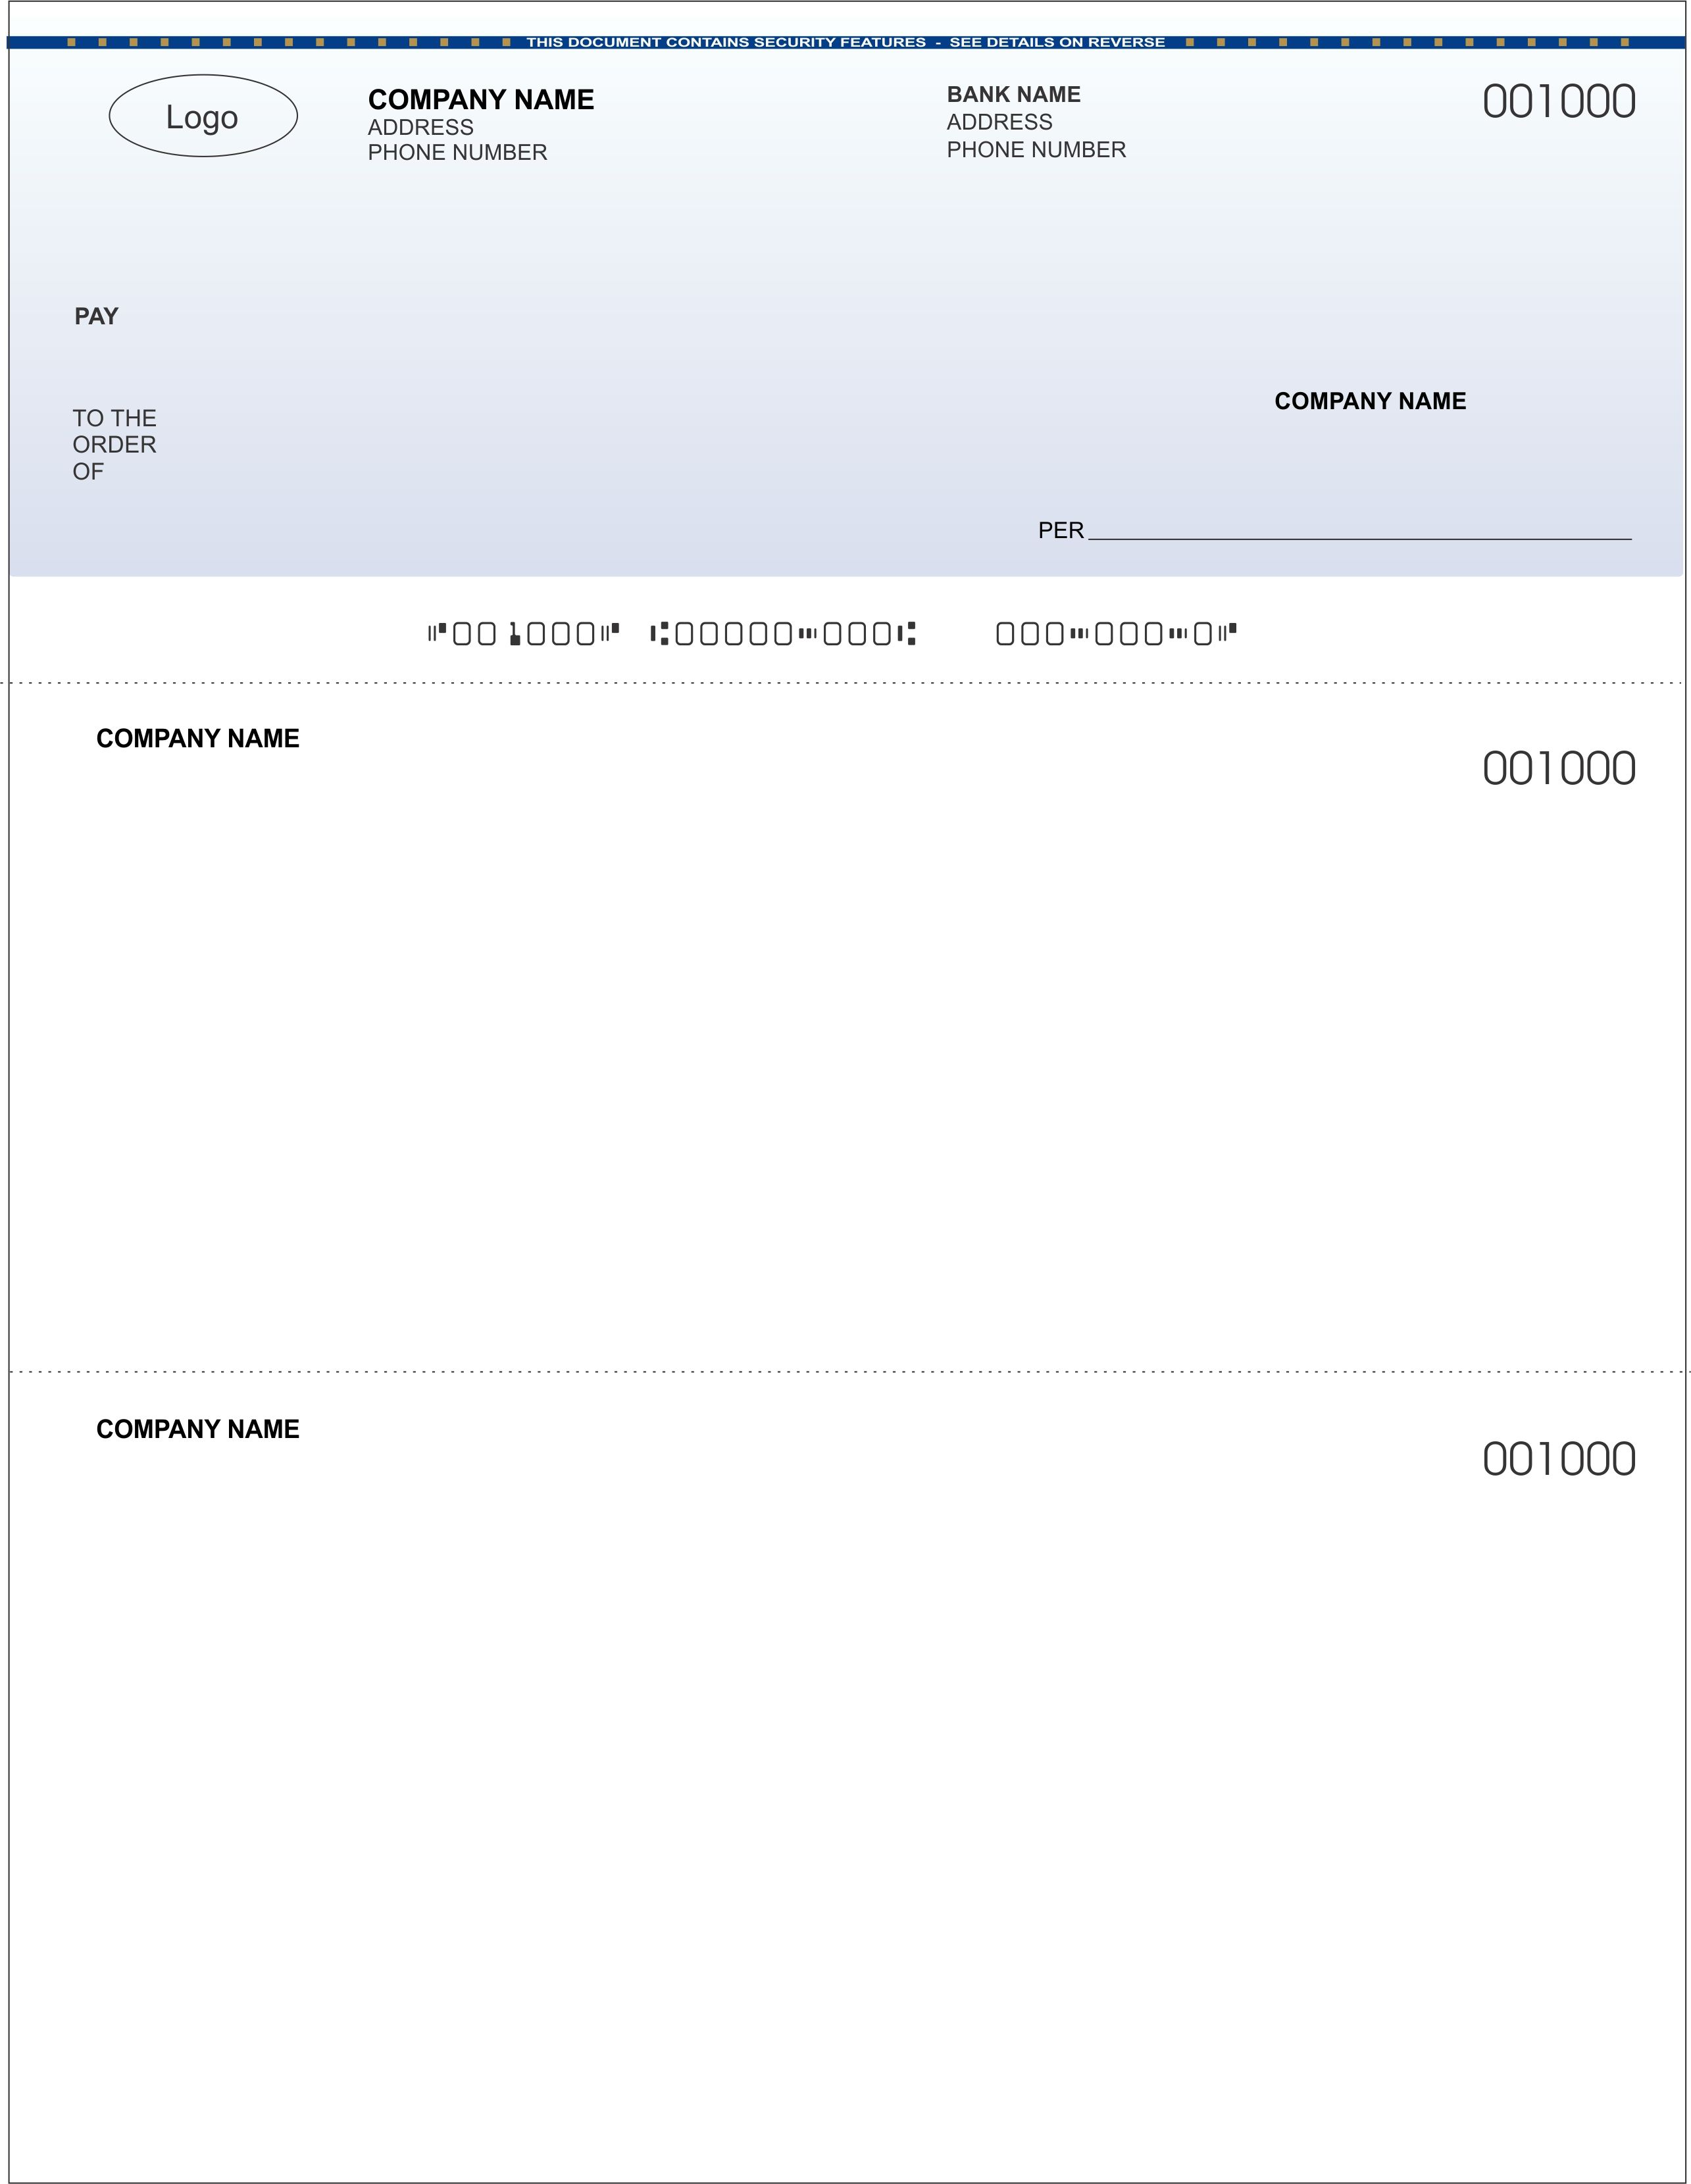 Pin by Super Printers on Business Cheques (With images